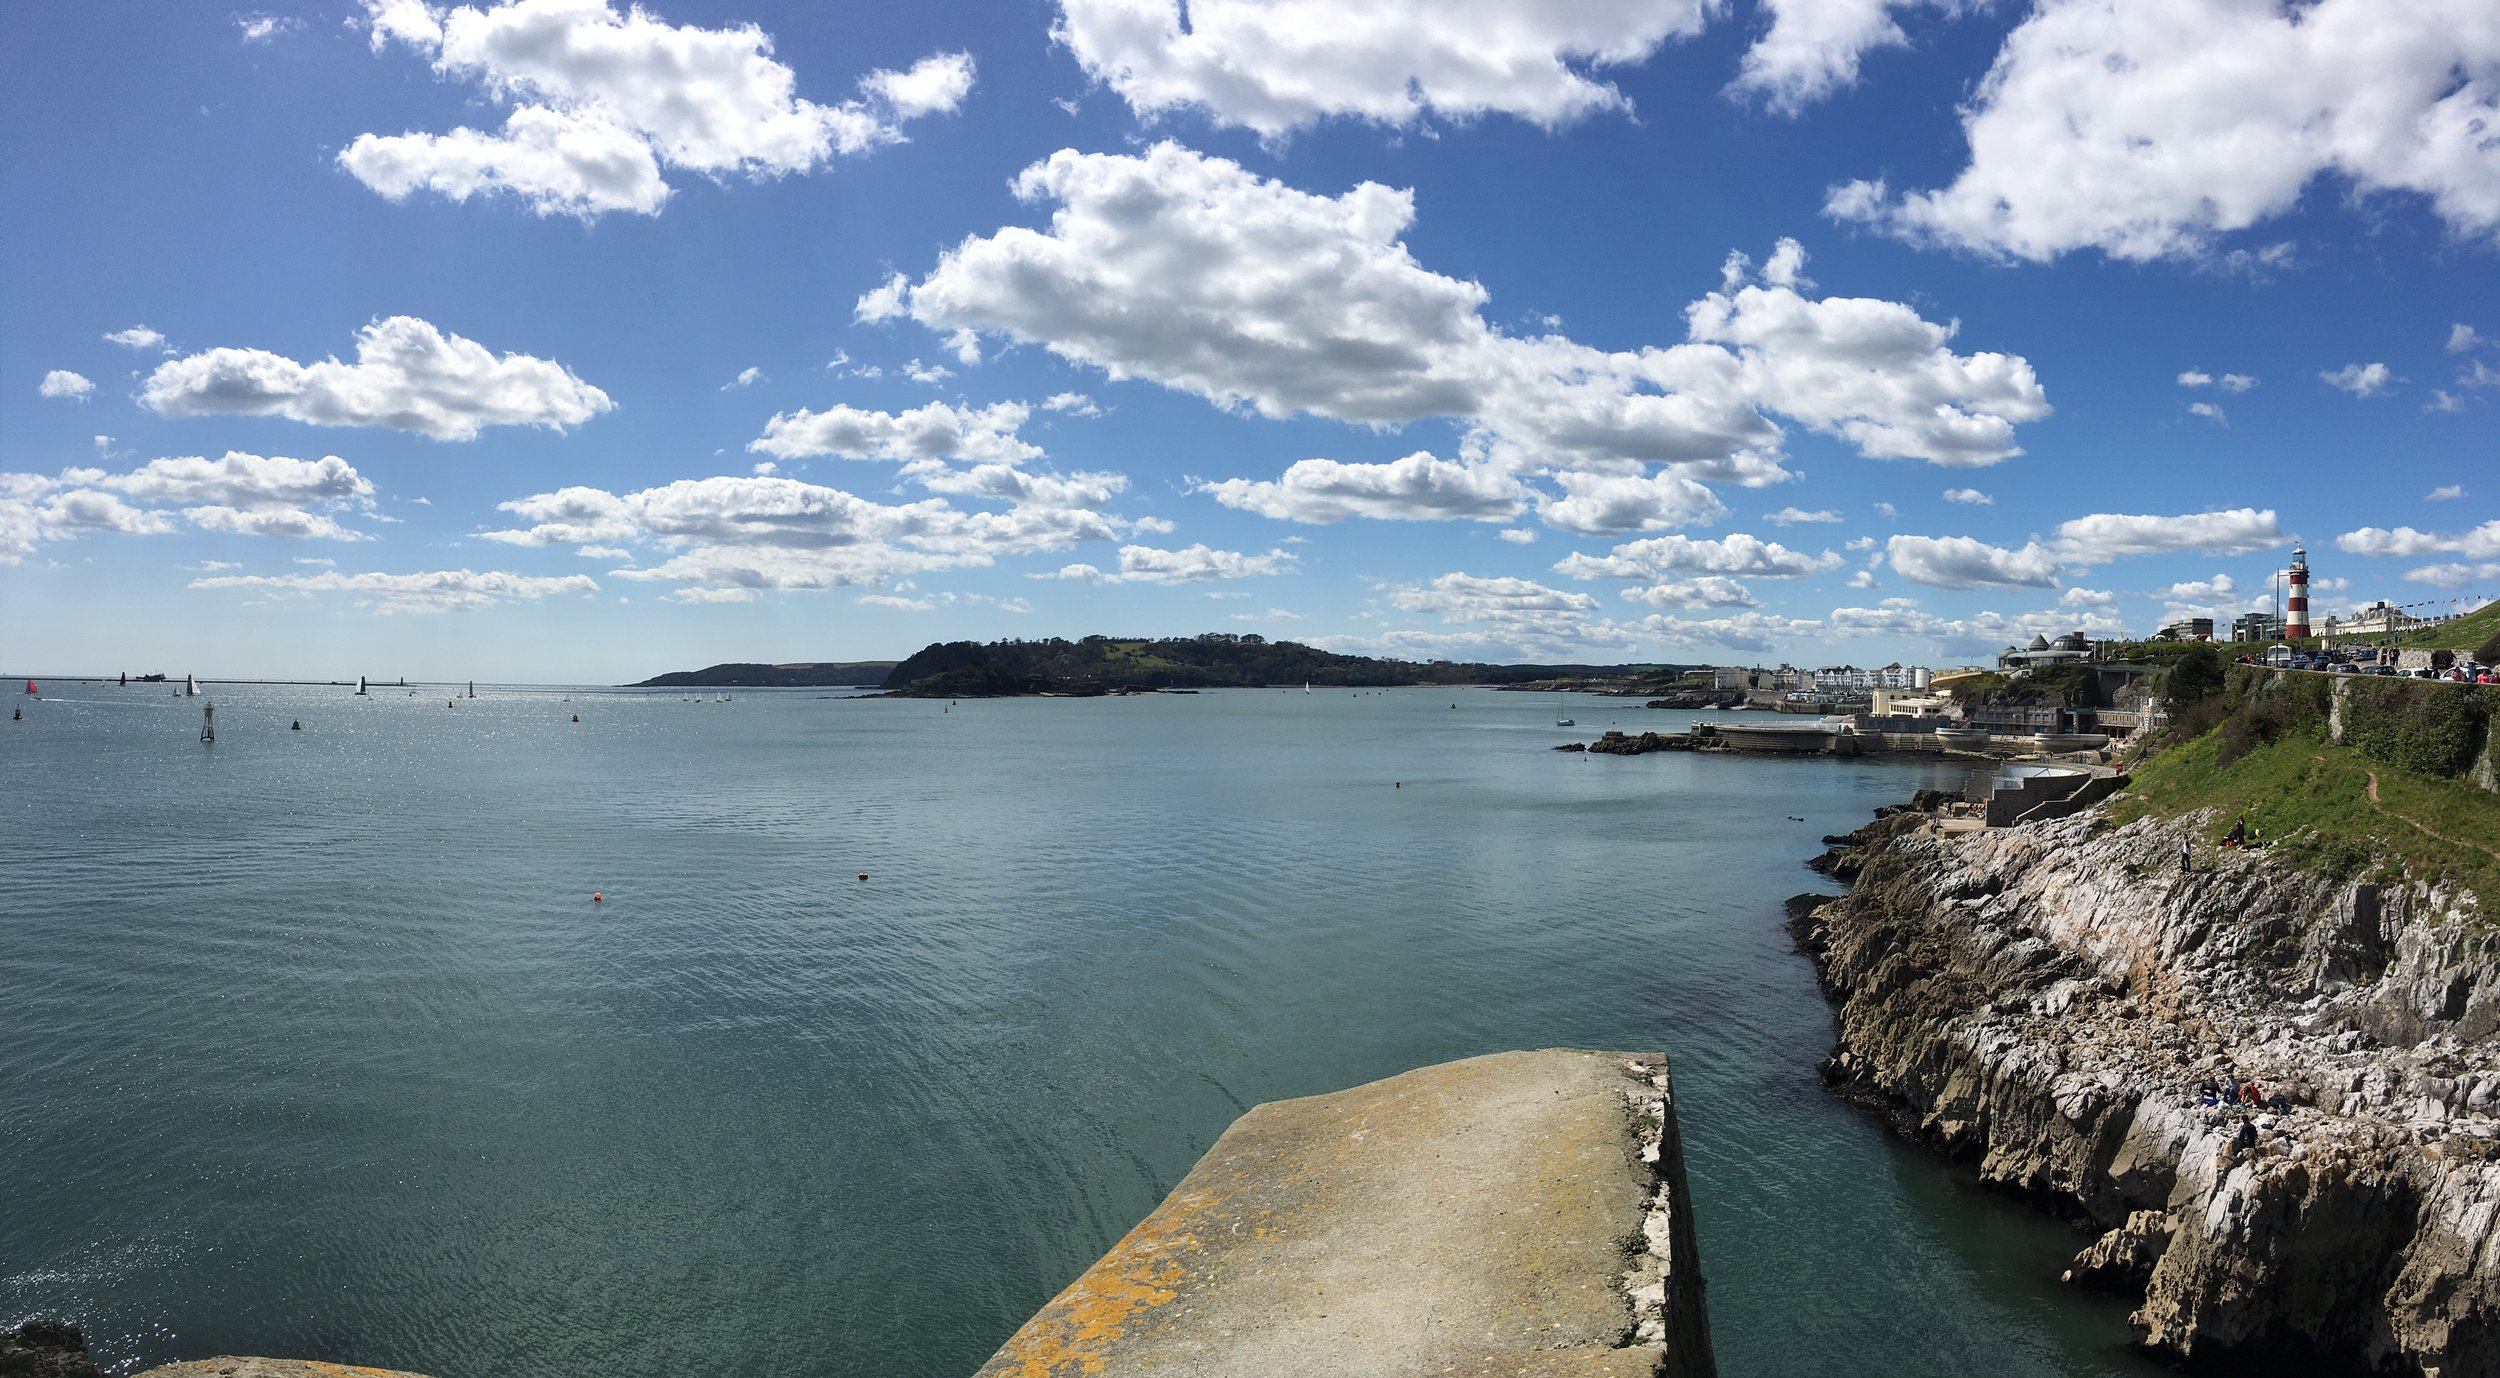 The Plymouth Sound